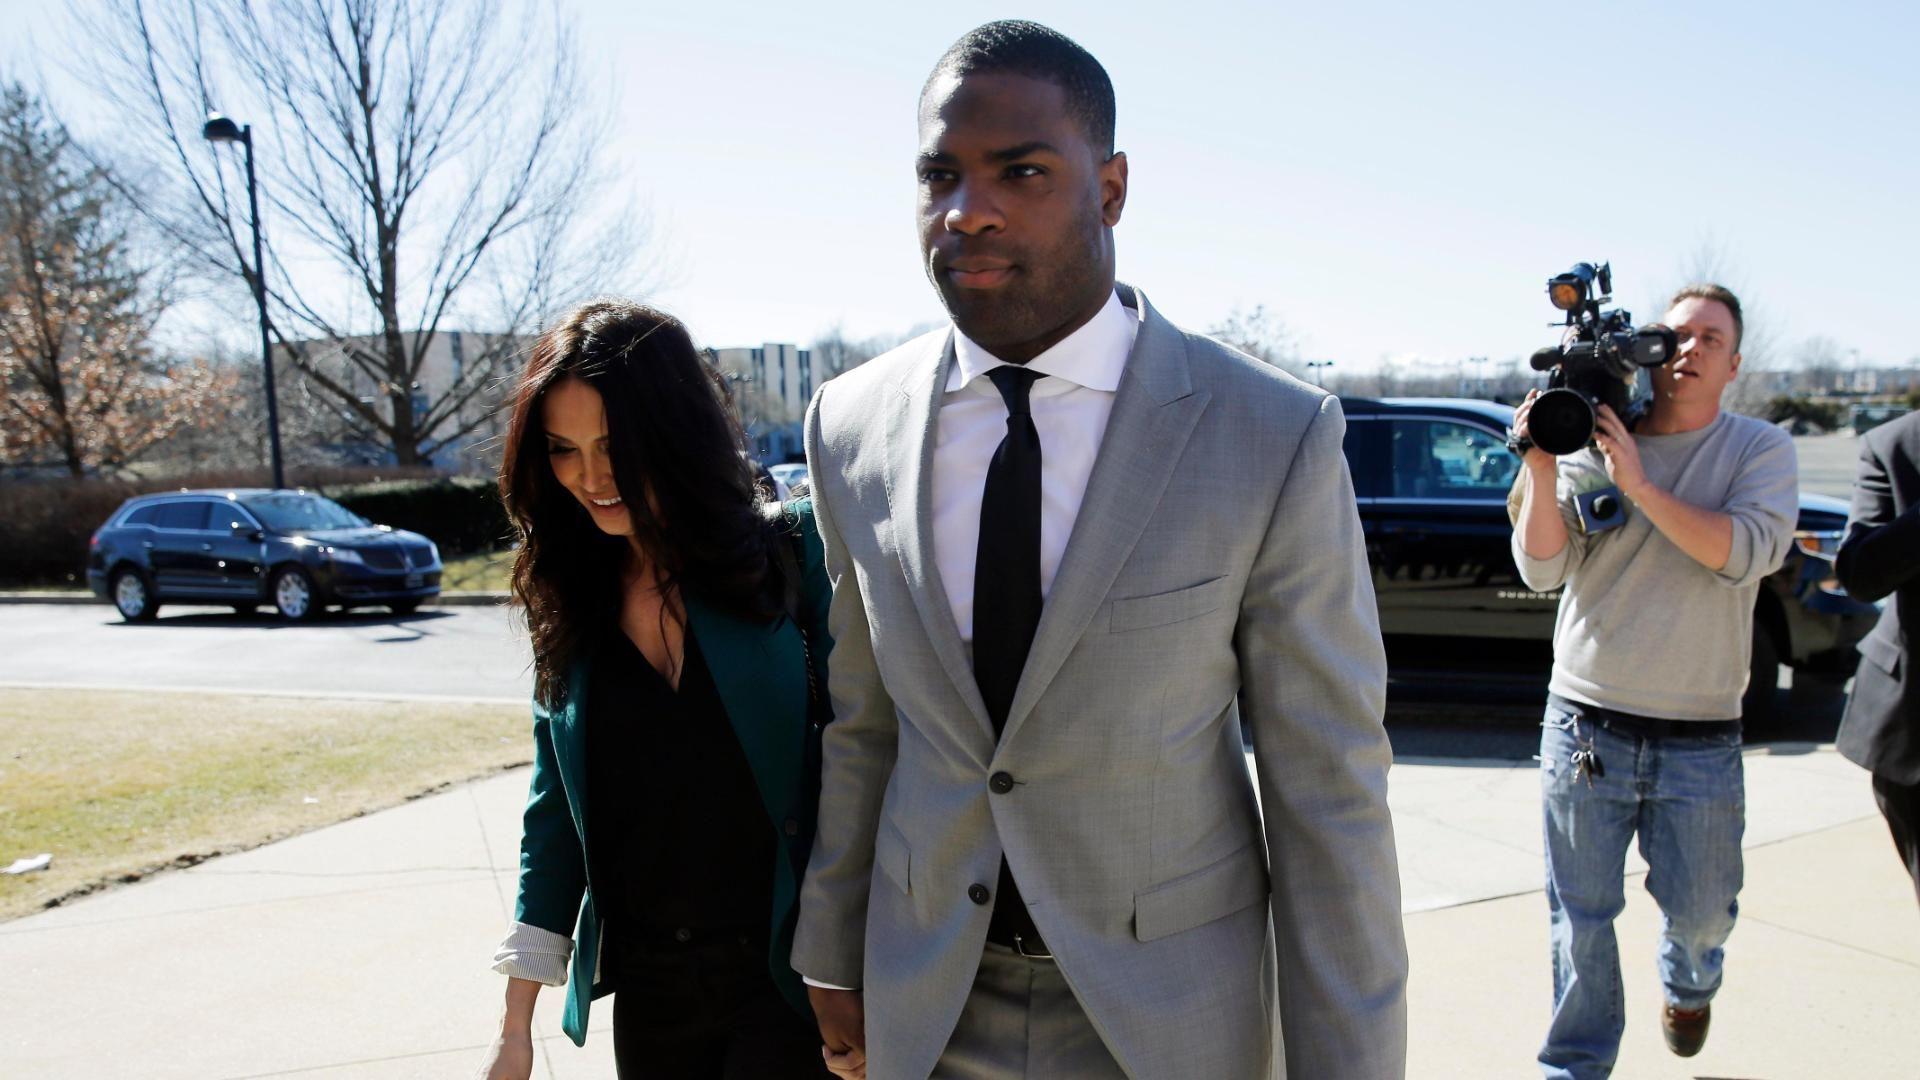 DeMarco Murray Signs With Eagles